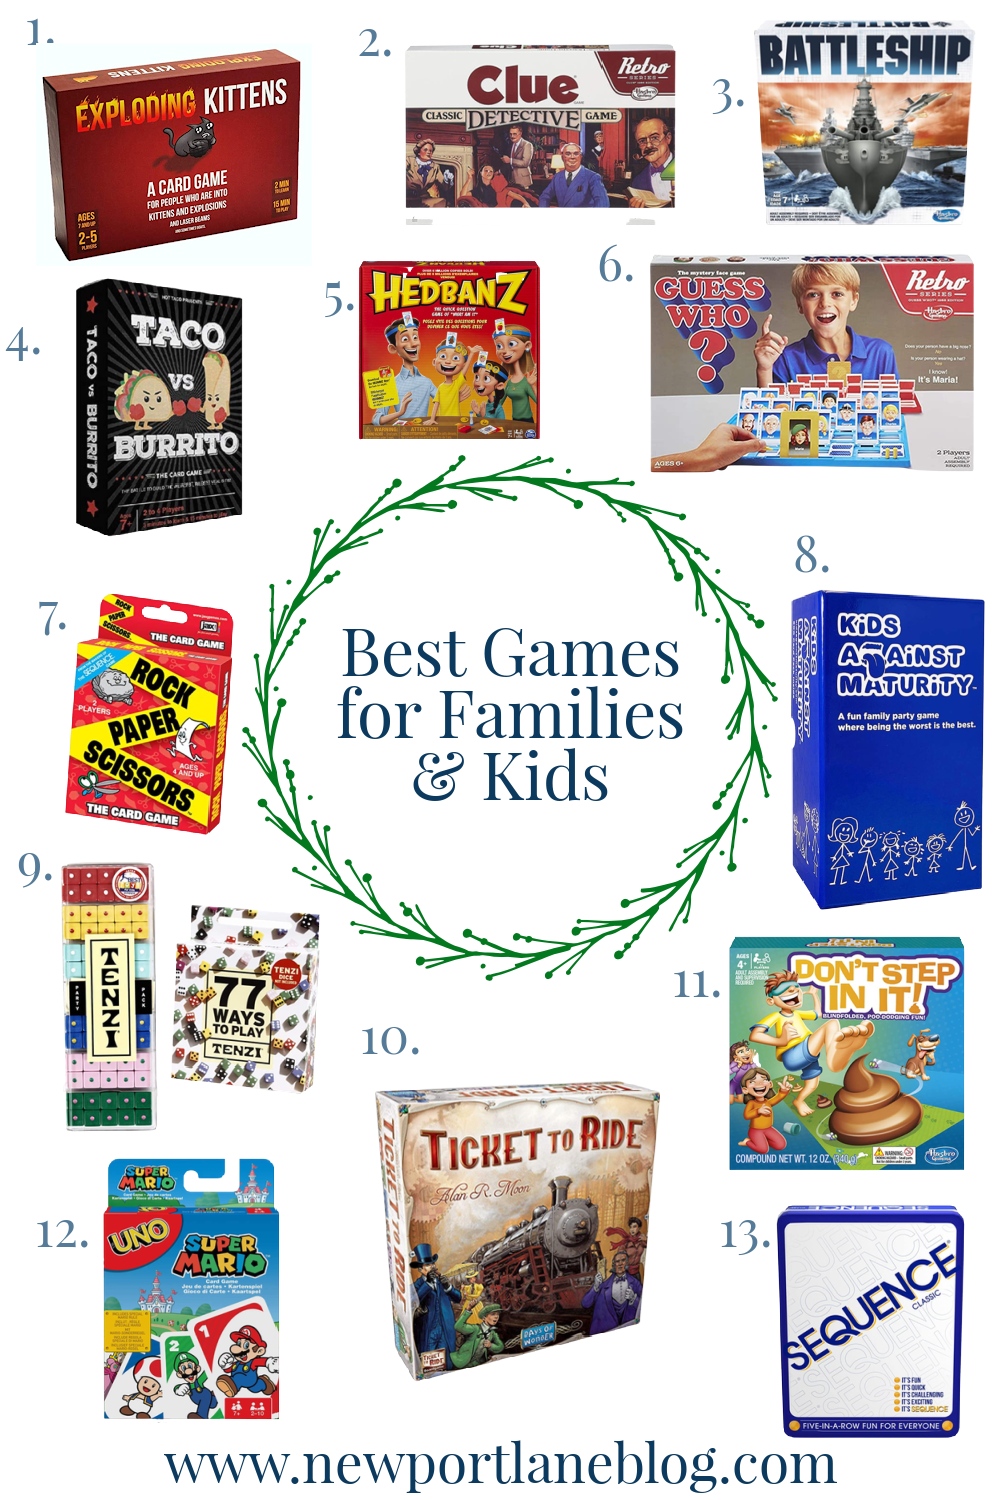 Looking for some new games? Check out my post on the best games for families and kids! #amazon #christmasgifts #games